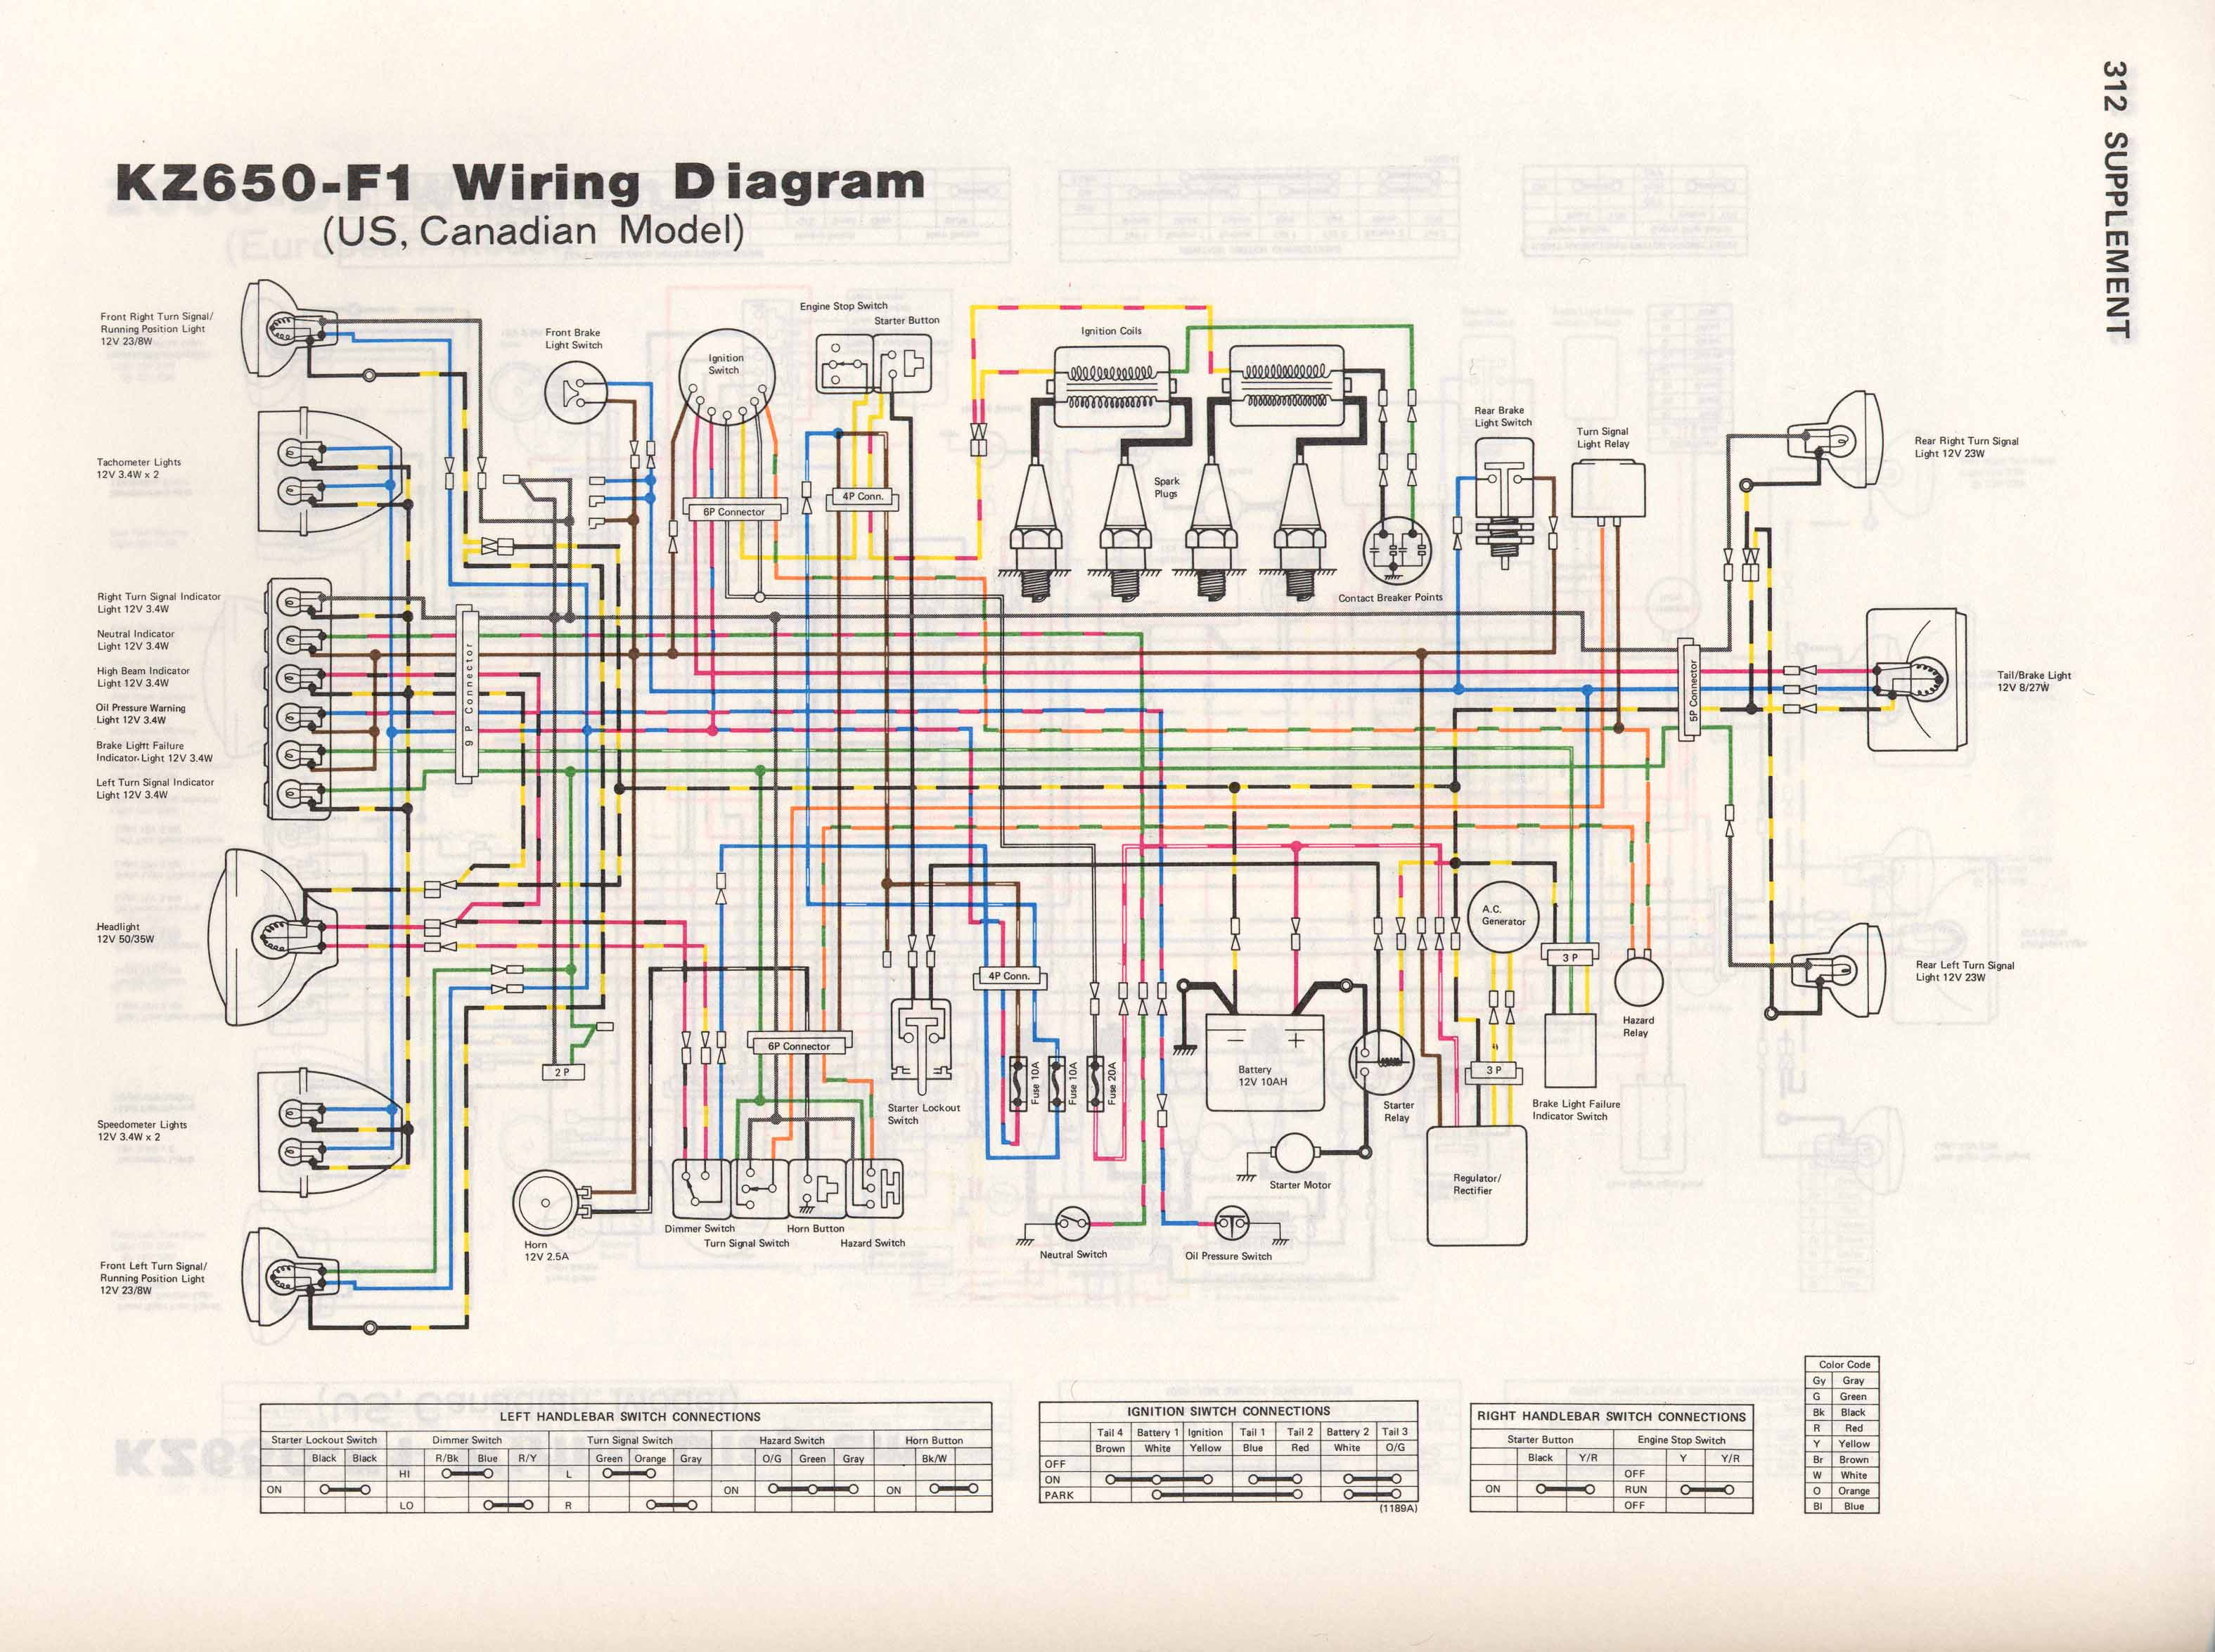 Kz750 Wiring Diagram | Wiring Diagram on